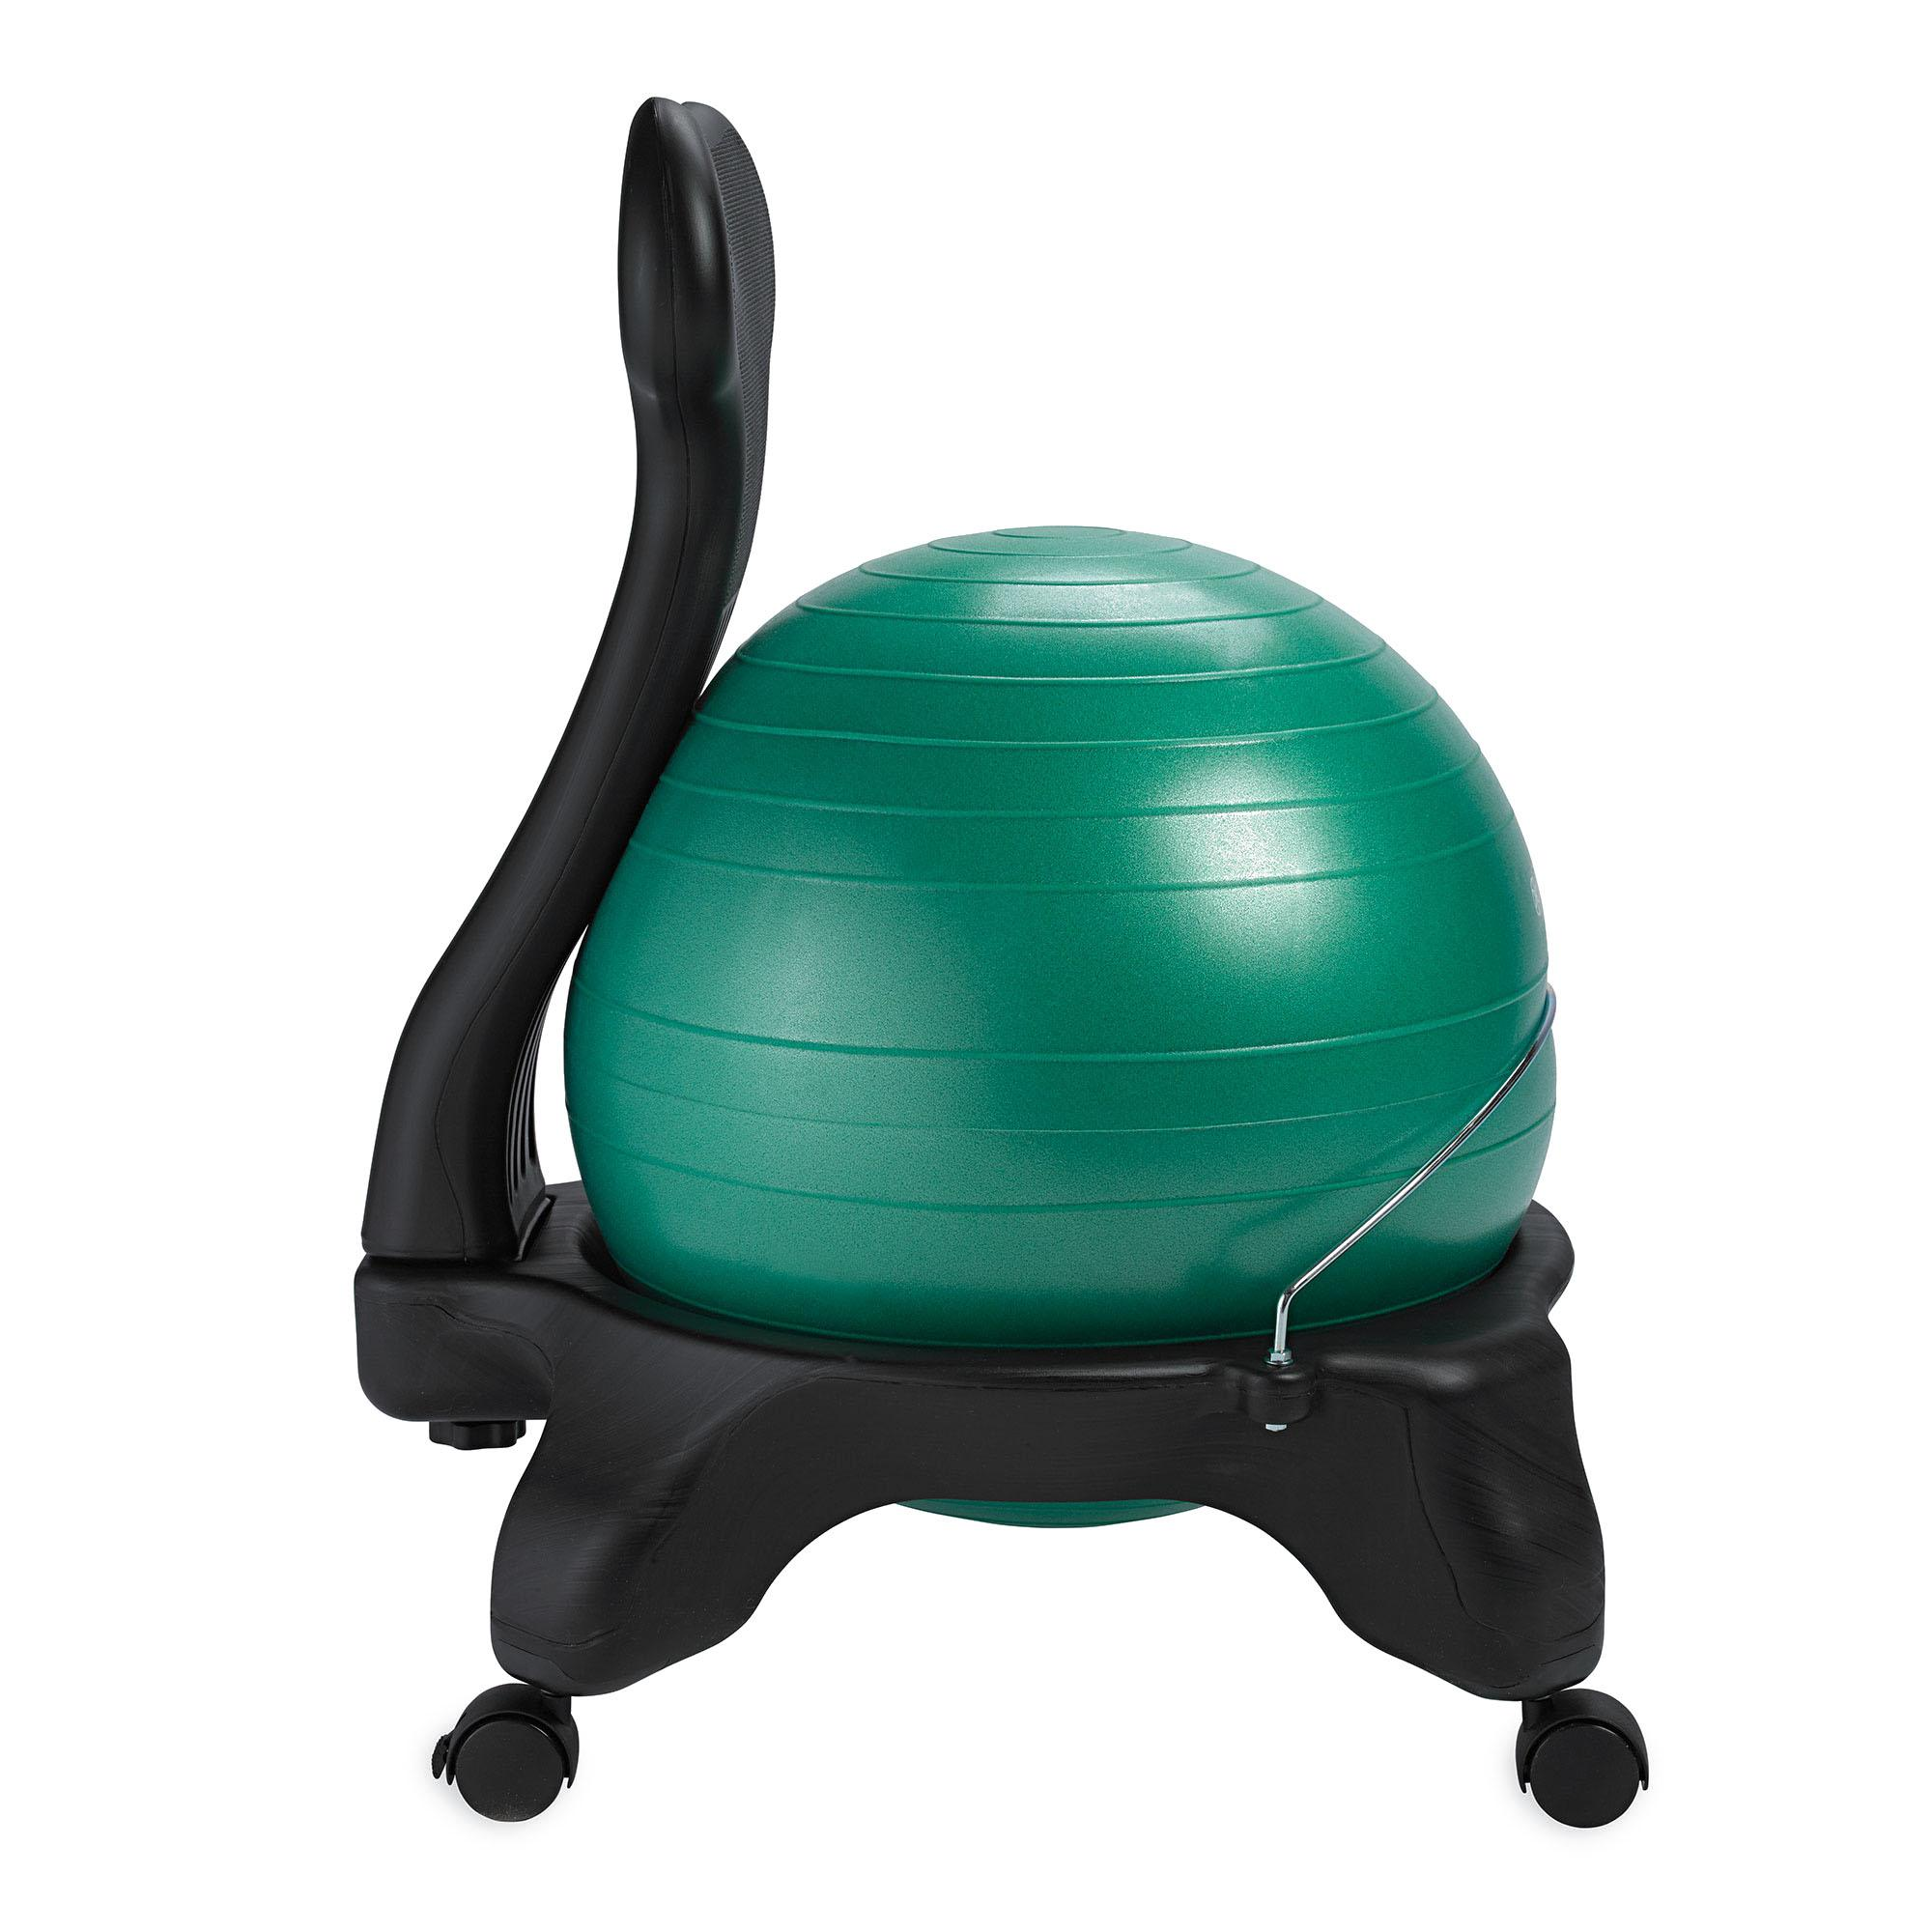 ball chair amazon how to paint metal chairs gaiam balance replacement